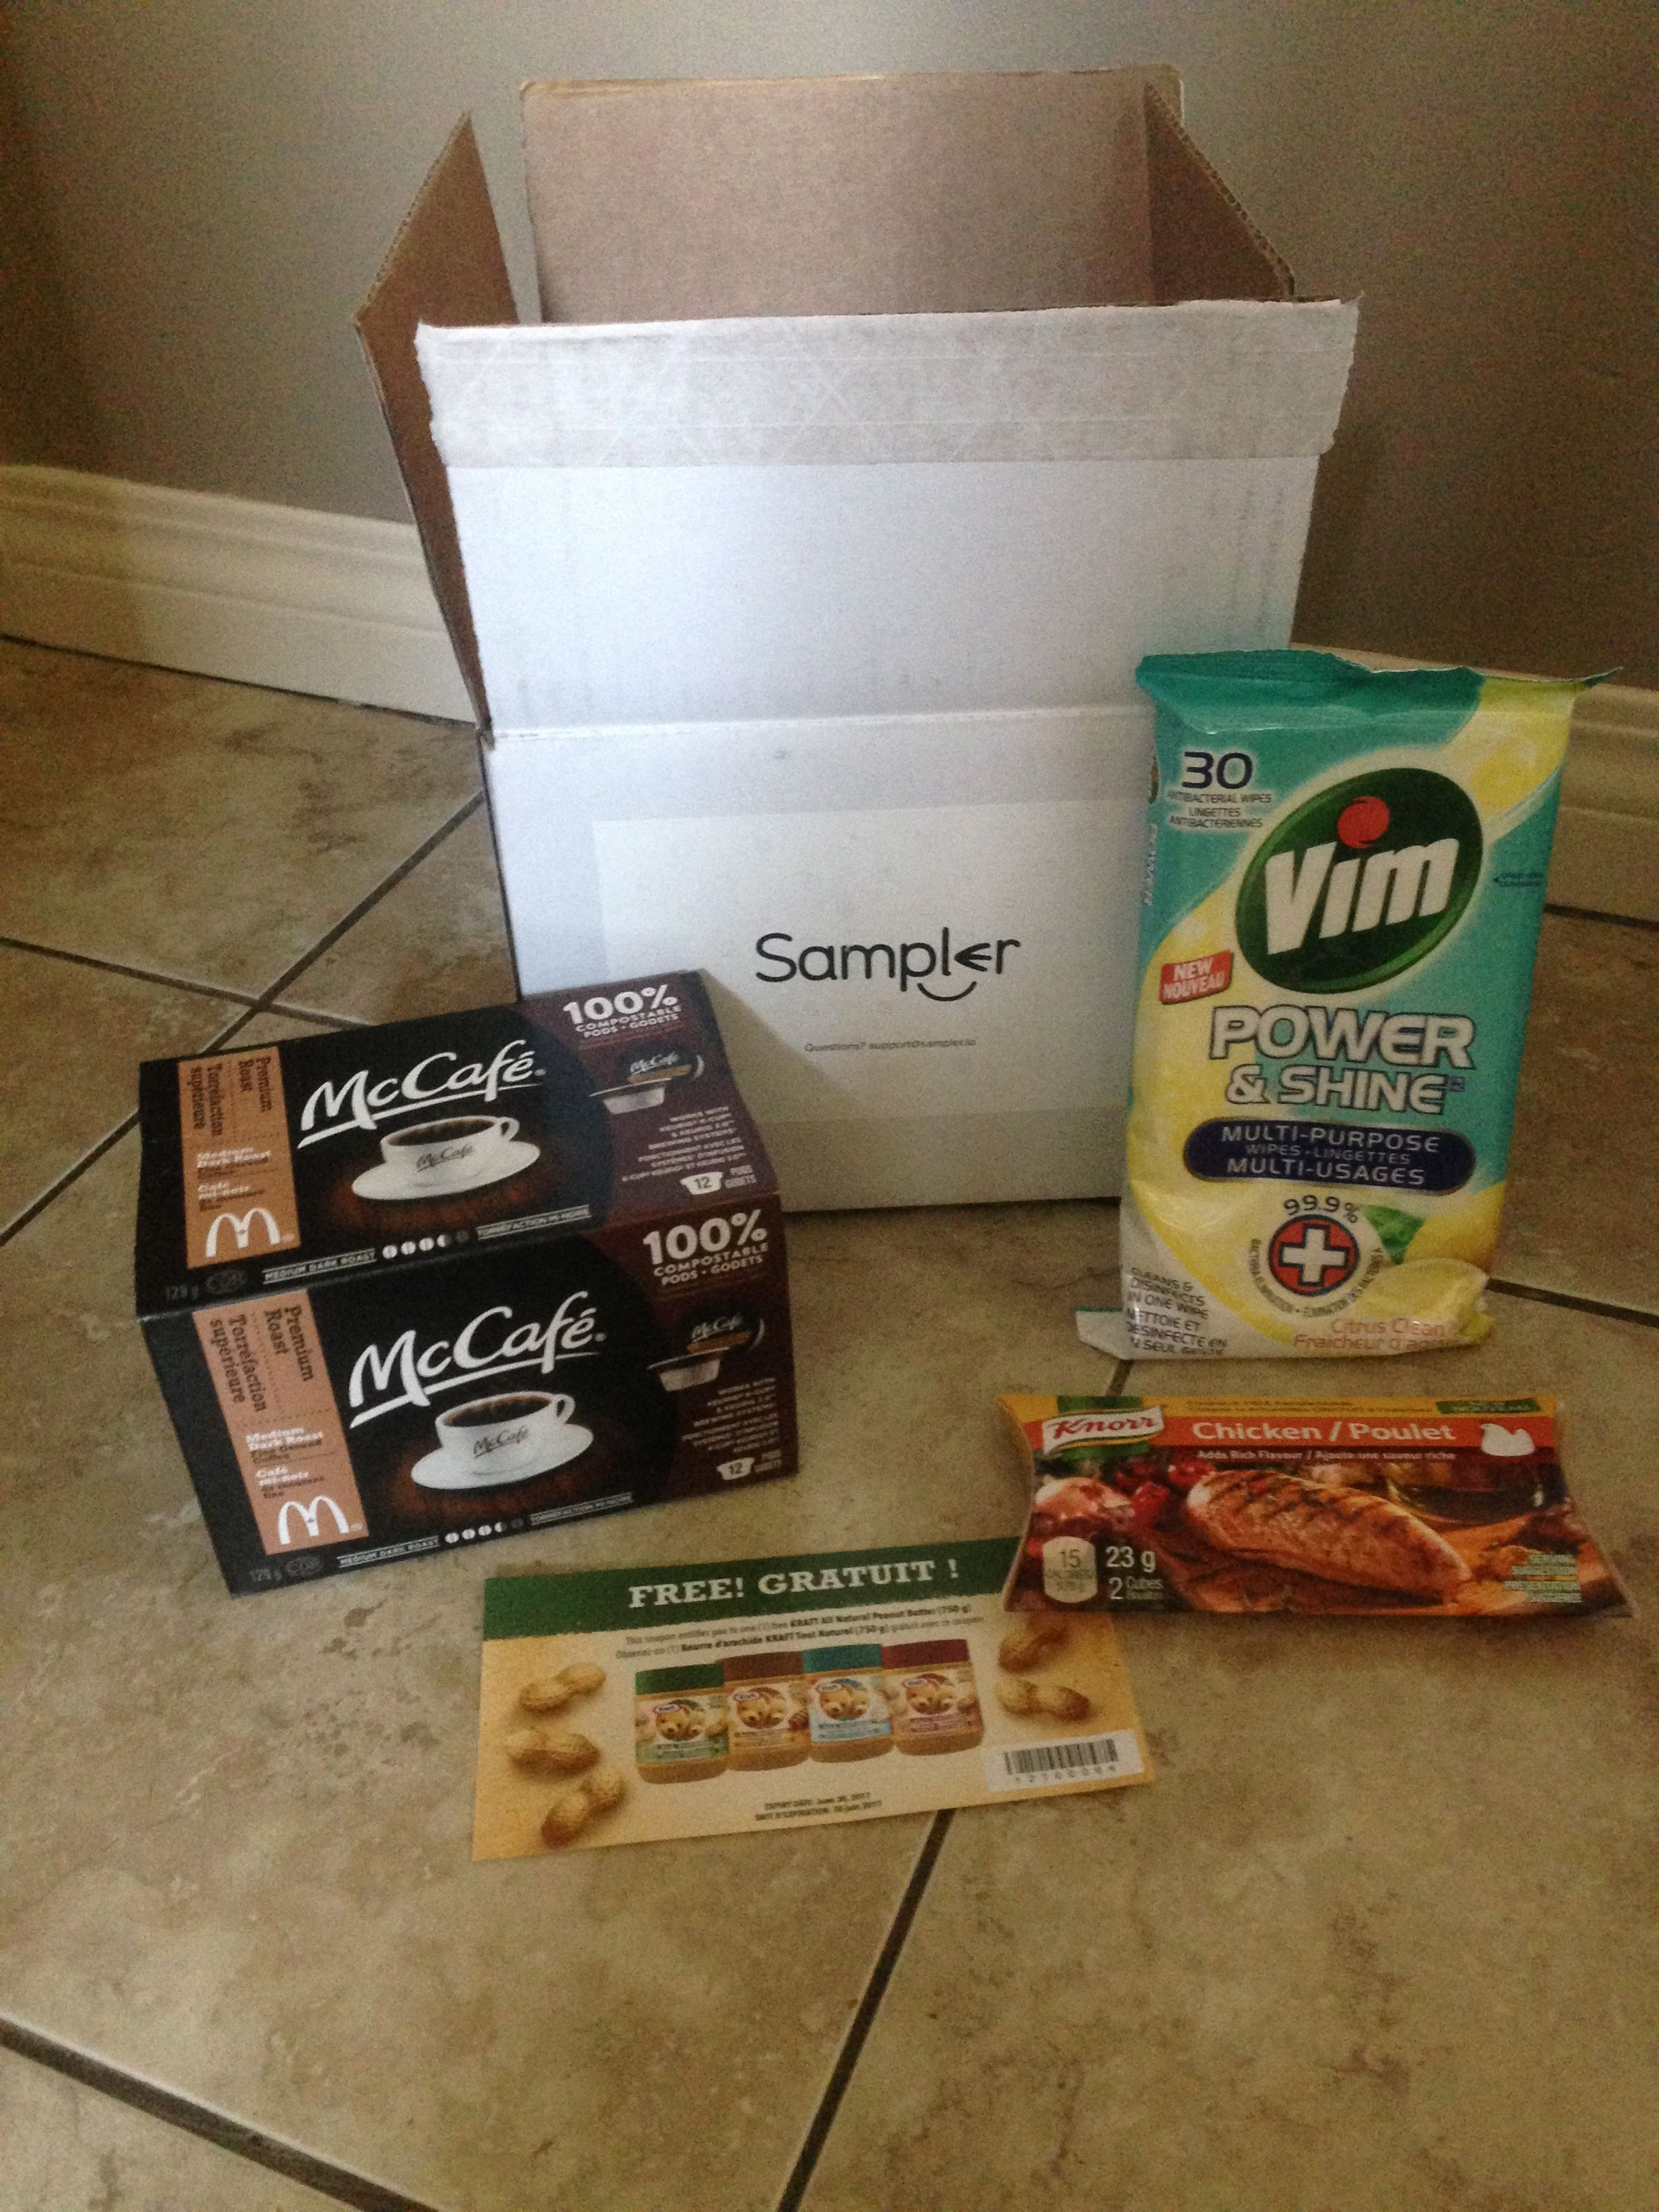 Thank you Sampler for these great freebies!